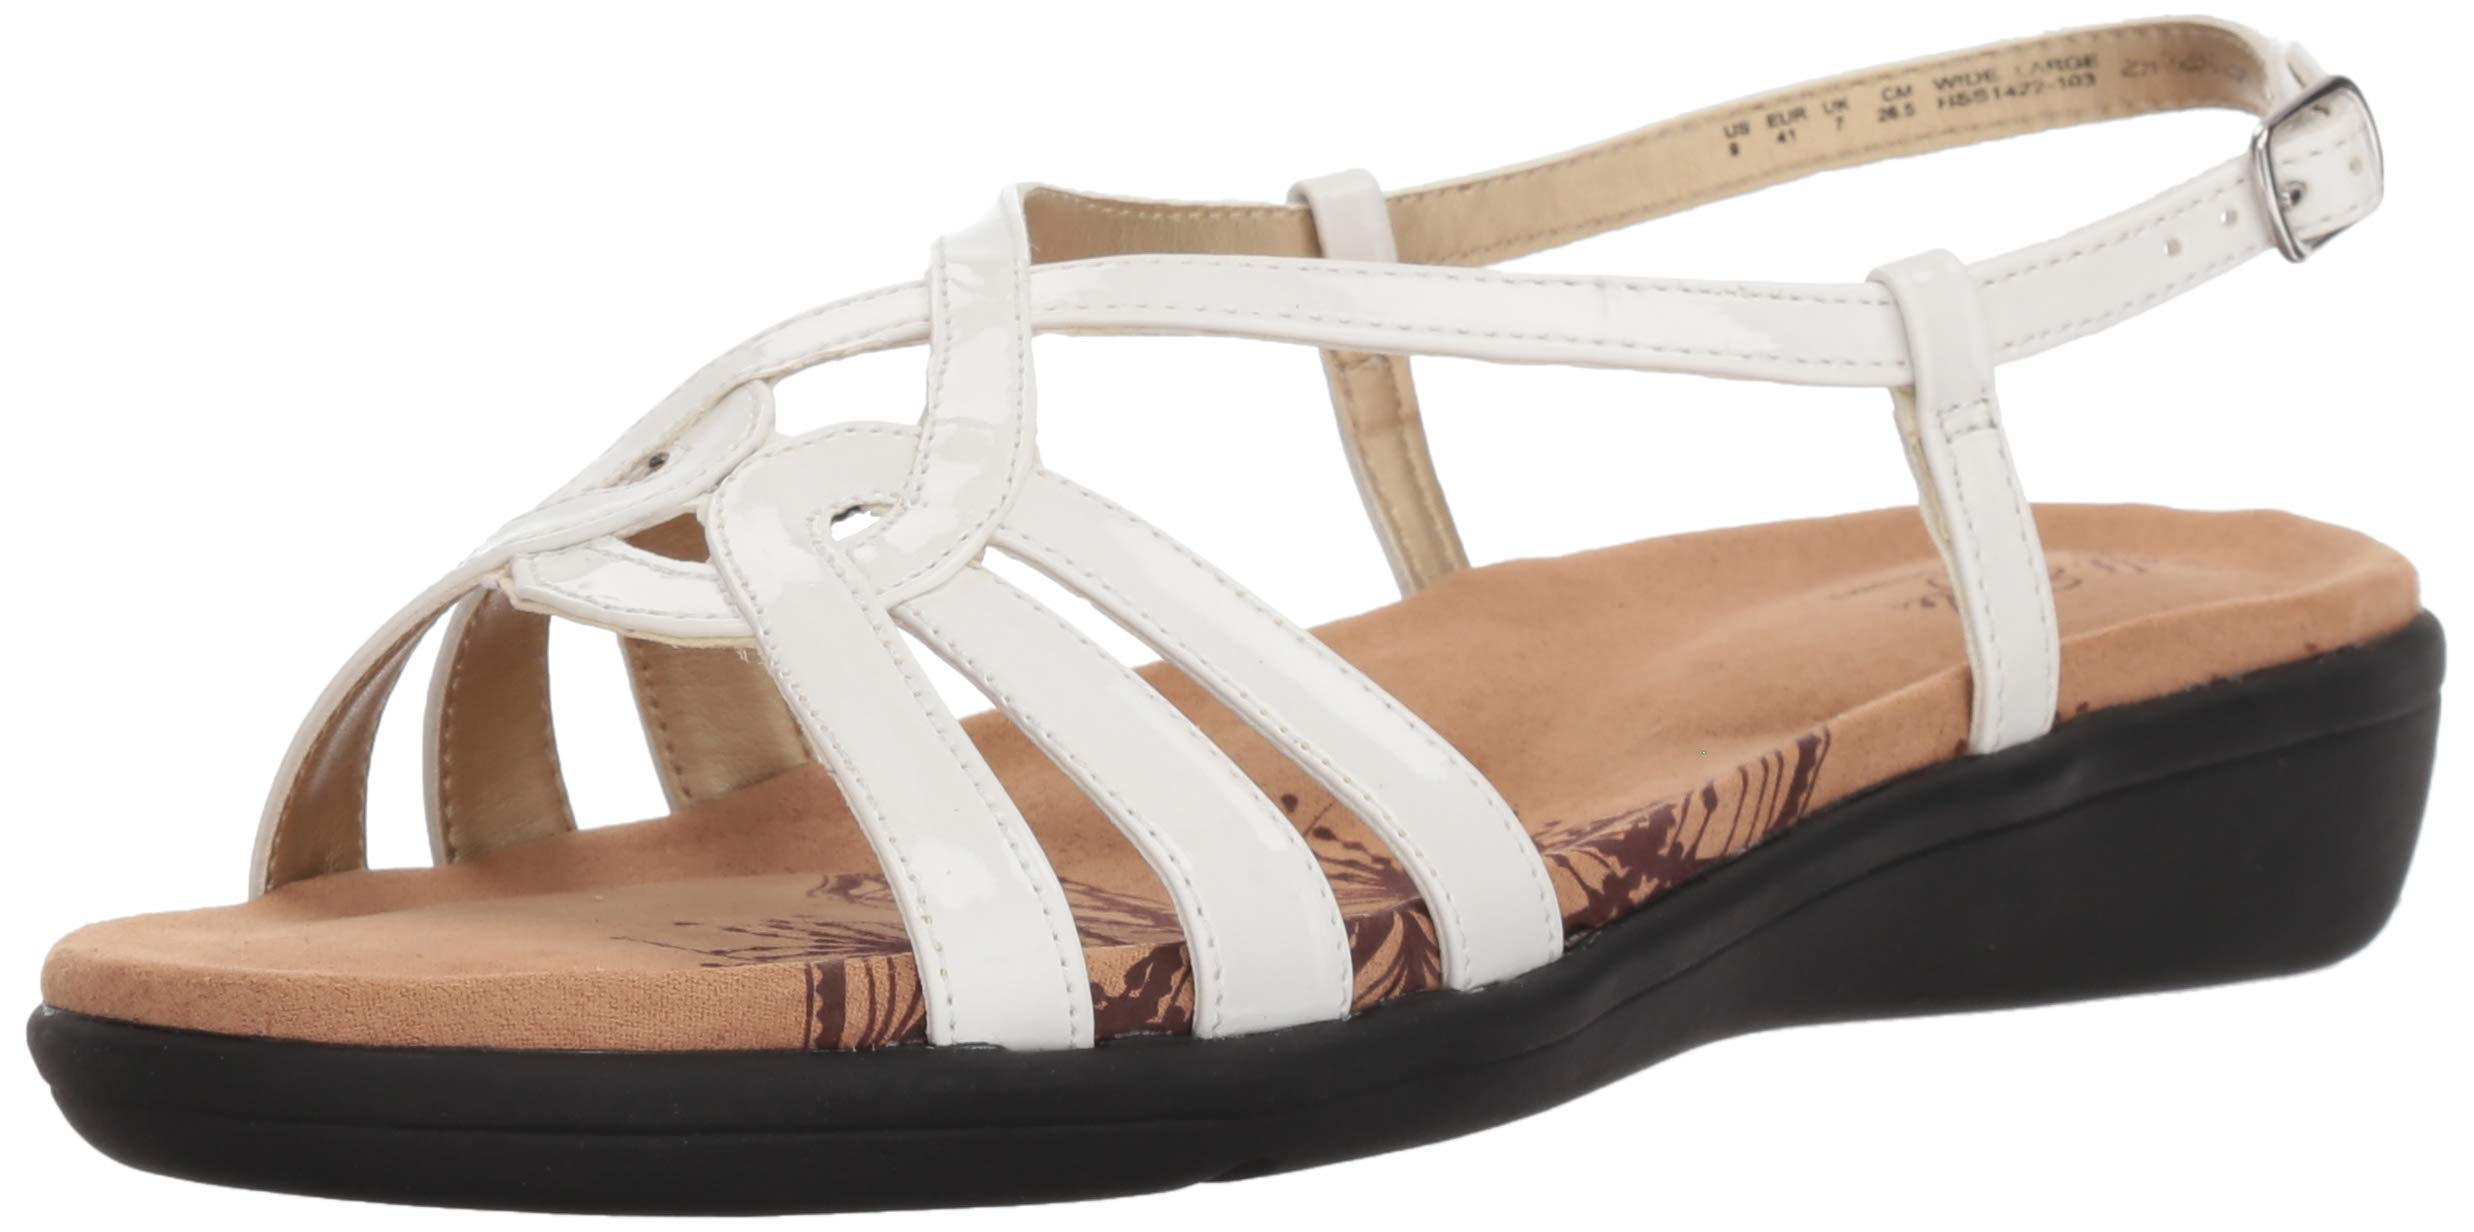 Soft Style by Hush Puppies Women's Patrese Sandal, White Patent, 07.0 M US by Soft Style